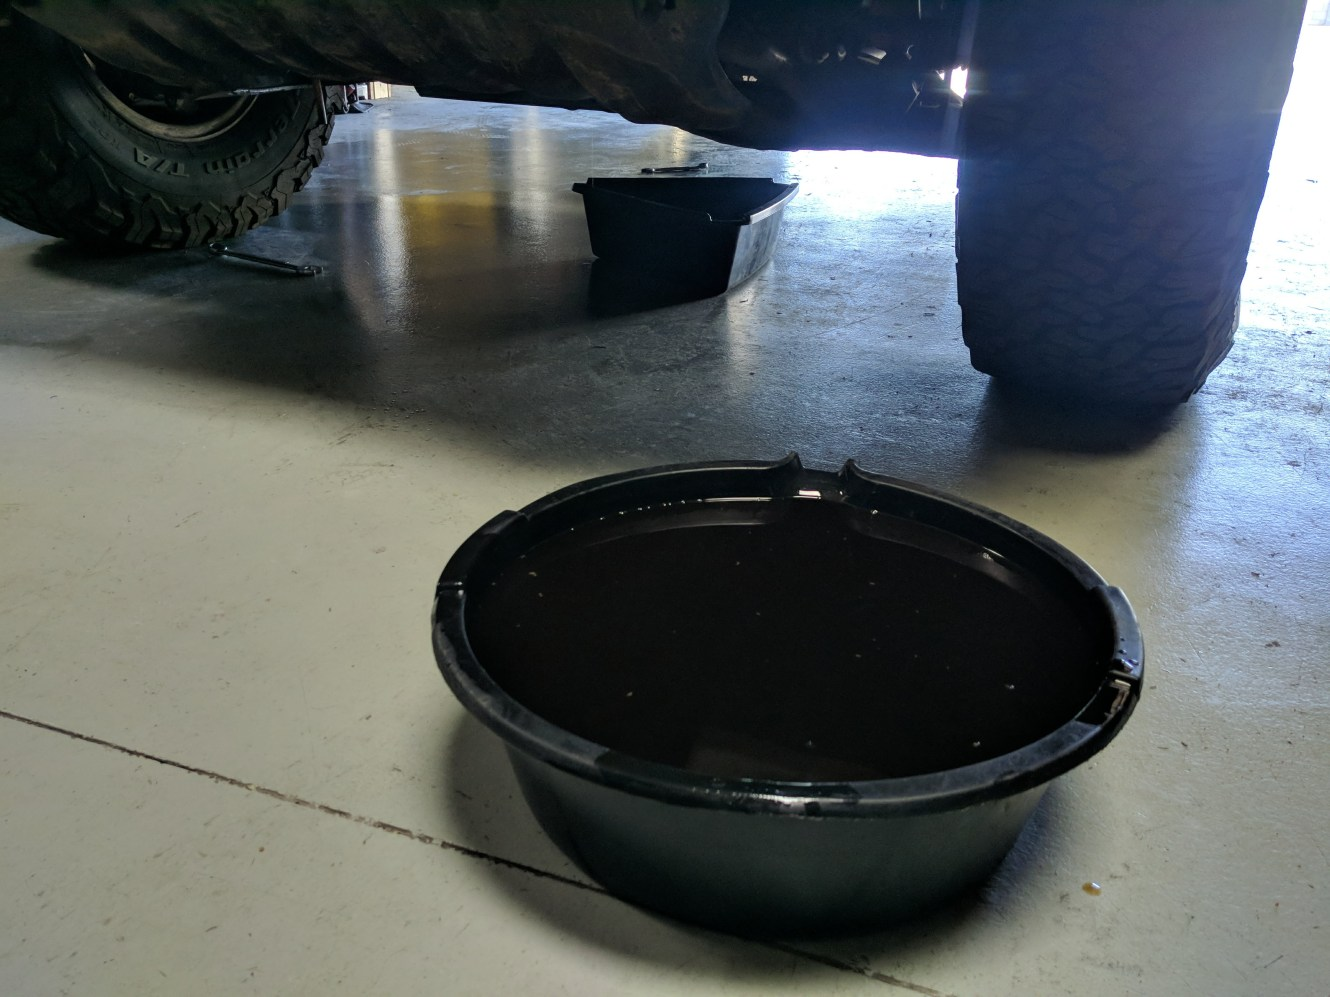 That's almost 9 quarts of oil in that pan. The transmission was draining into the other.